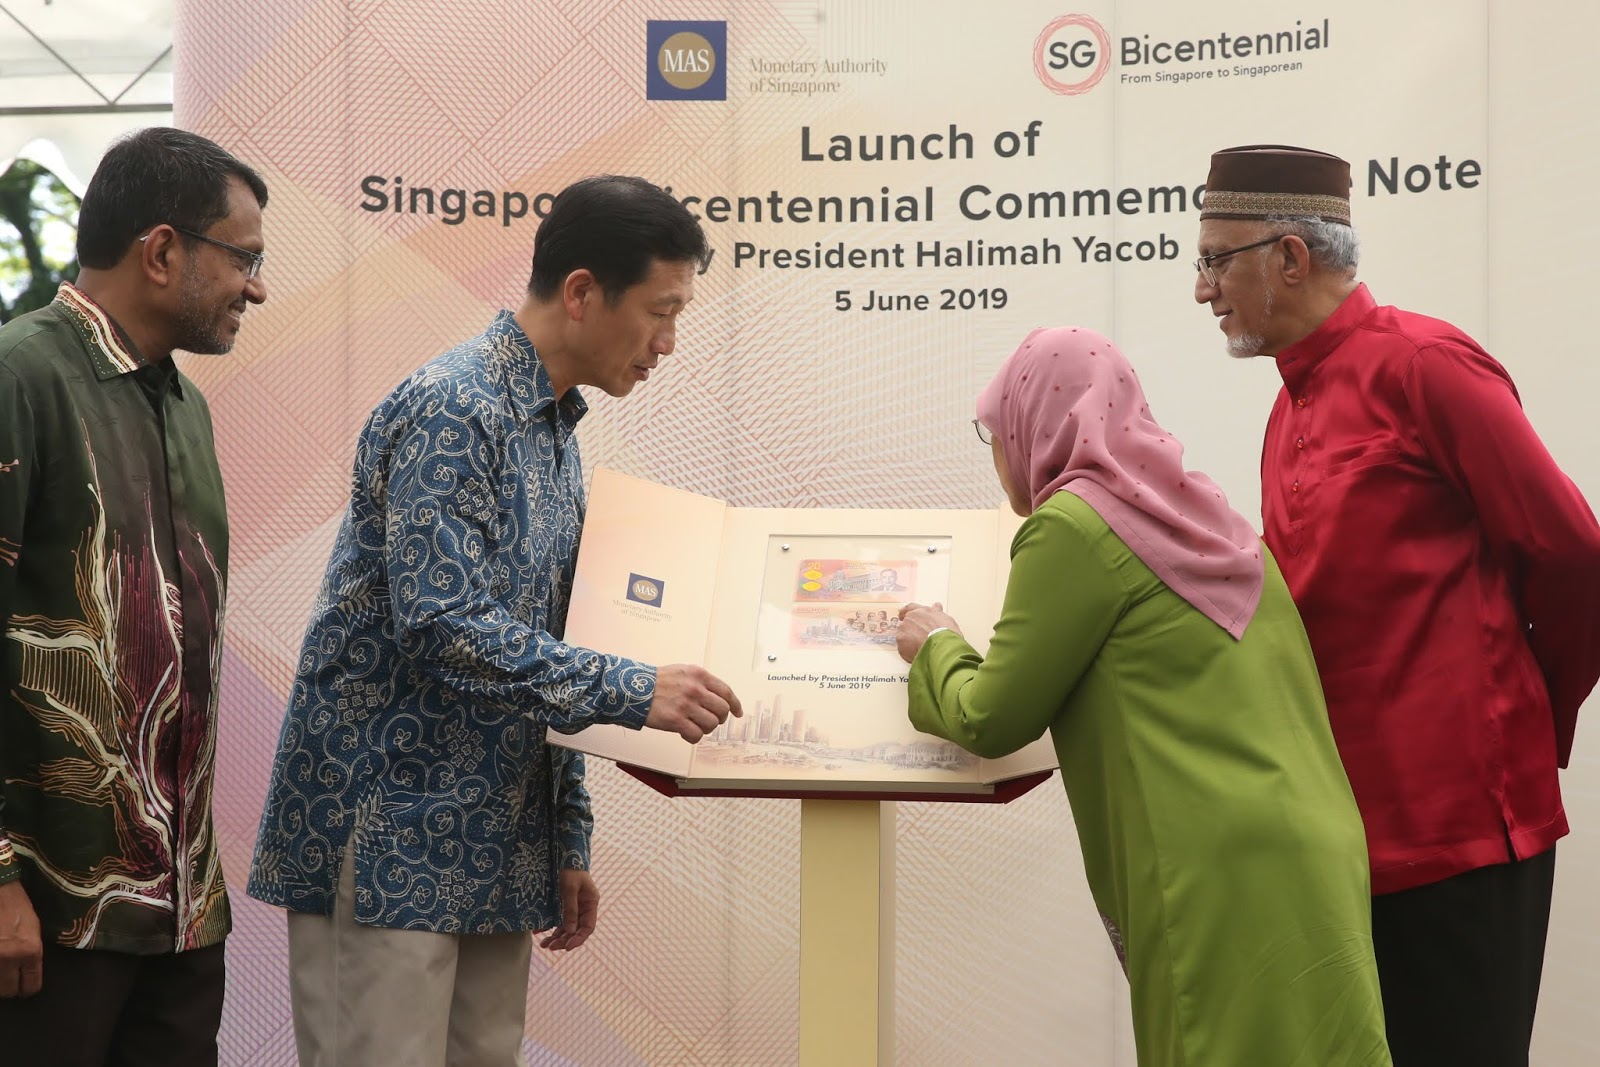 President Halimah Yacob and Minister for Education Ong Ye Kung look at the Singapore Bicentennial commemorative note after launching it at the Istana Open House on Hari Raya Puasa (June 5).